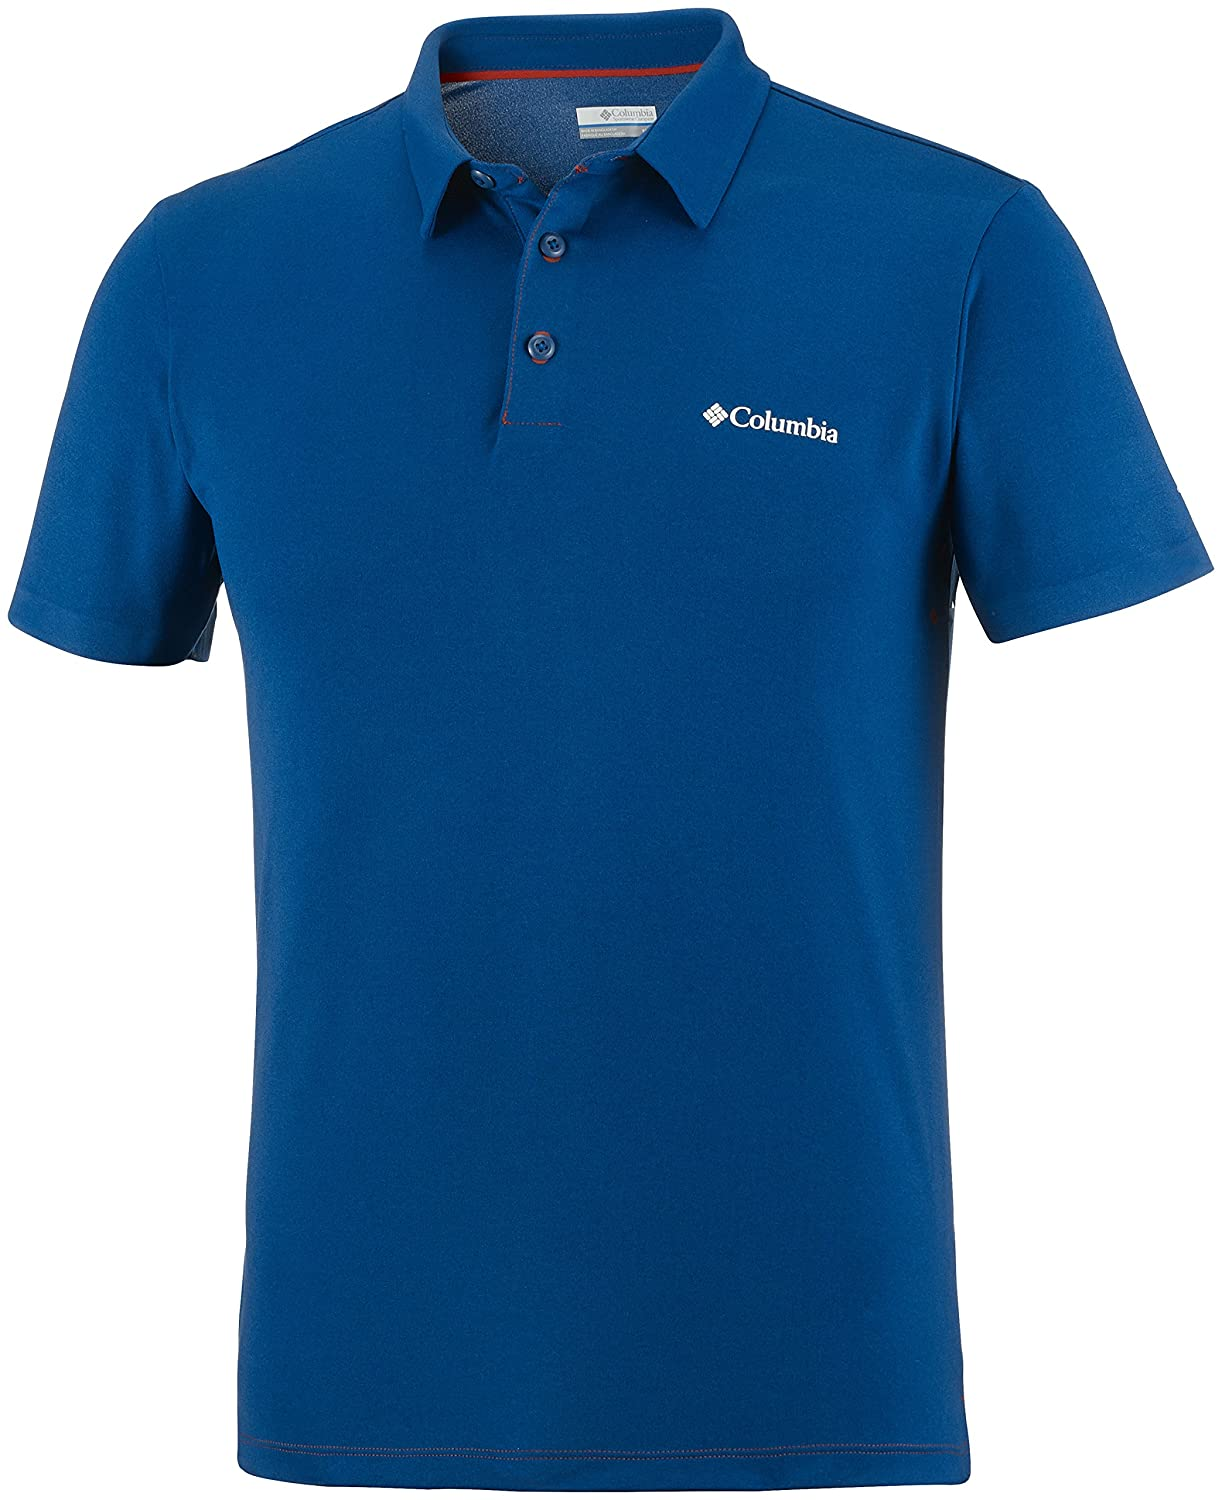 Columbia Koszulka Triple Canyon Tech Polo Blau-XL T-Shirt